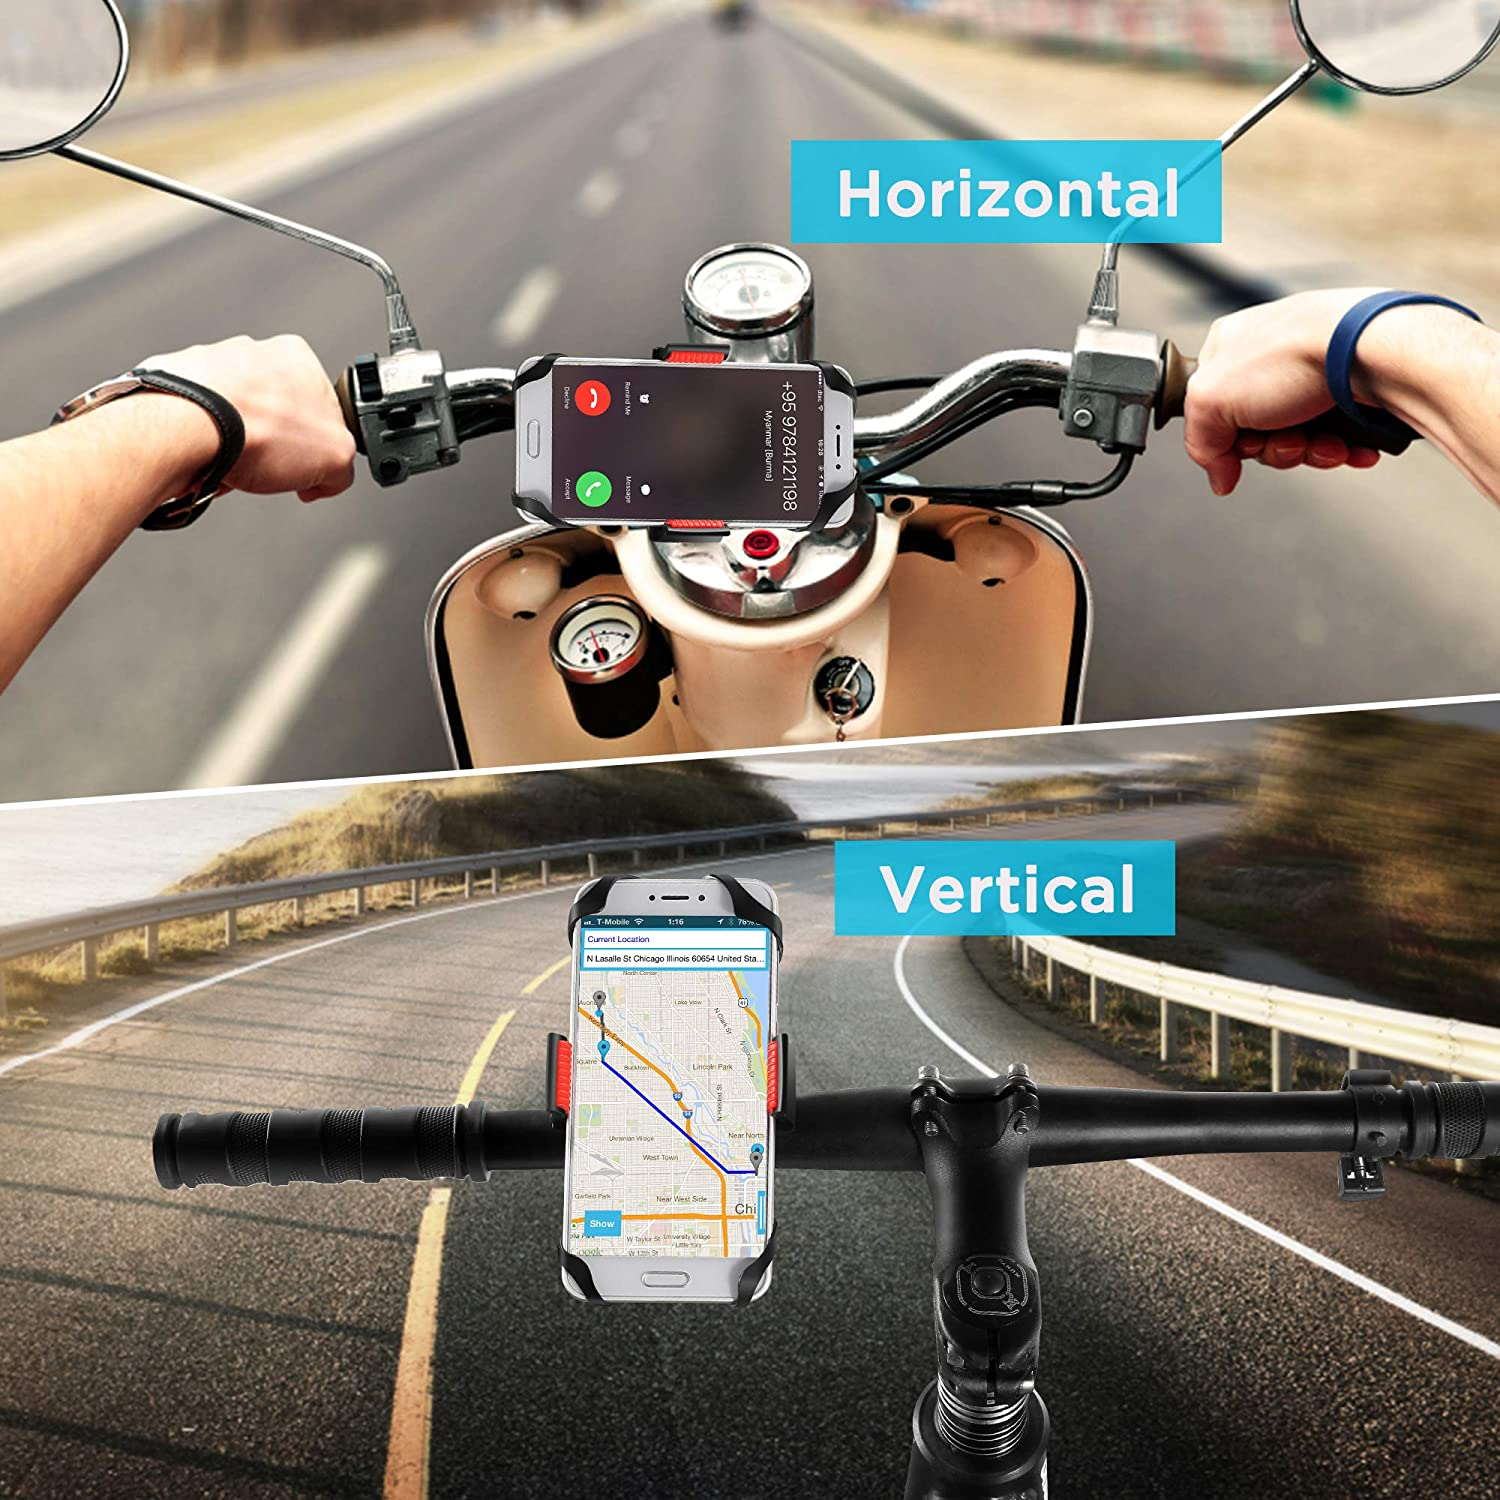 + Samsung Galaxy S3 S4 S5 S6 S7 Note 3//4//5,Nexus,HTC,LG,BlackBerry Bike Mount 6S 6S plus 5S 5C IPOW Universal Cell Phone Bicycle Rack Handlebar /& Motorcycle Holder Cradle Compatible with iPhone 6 6